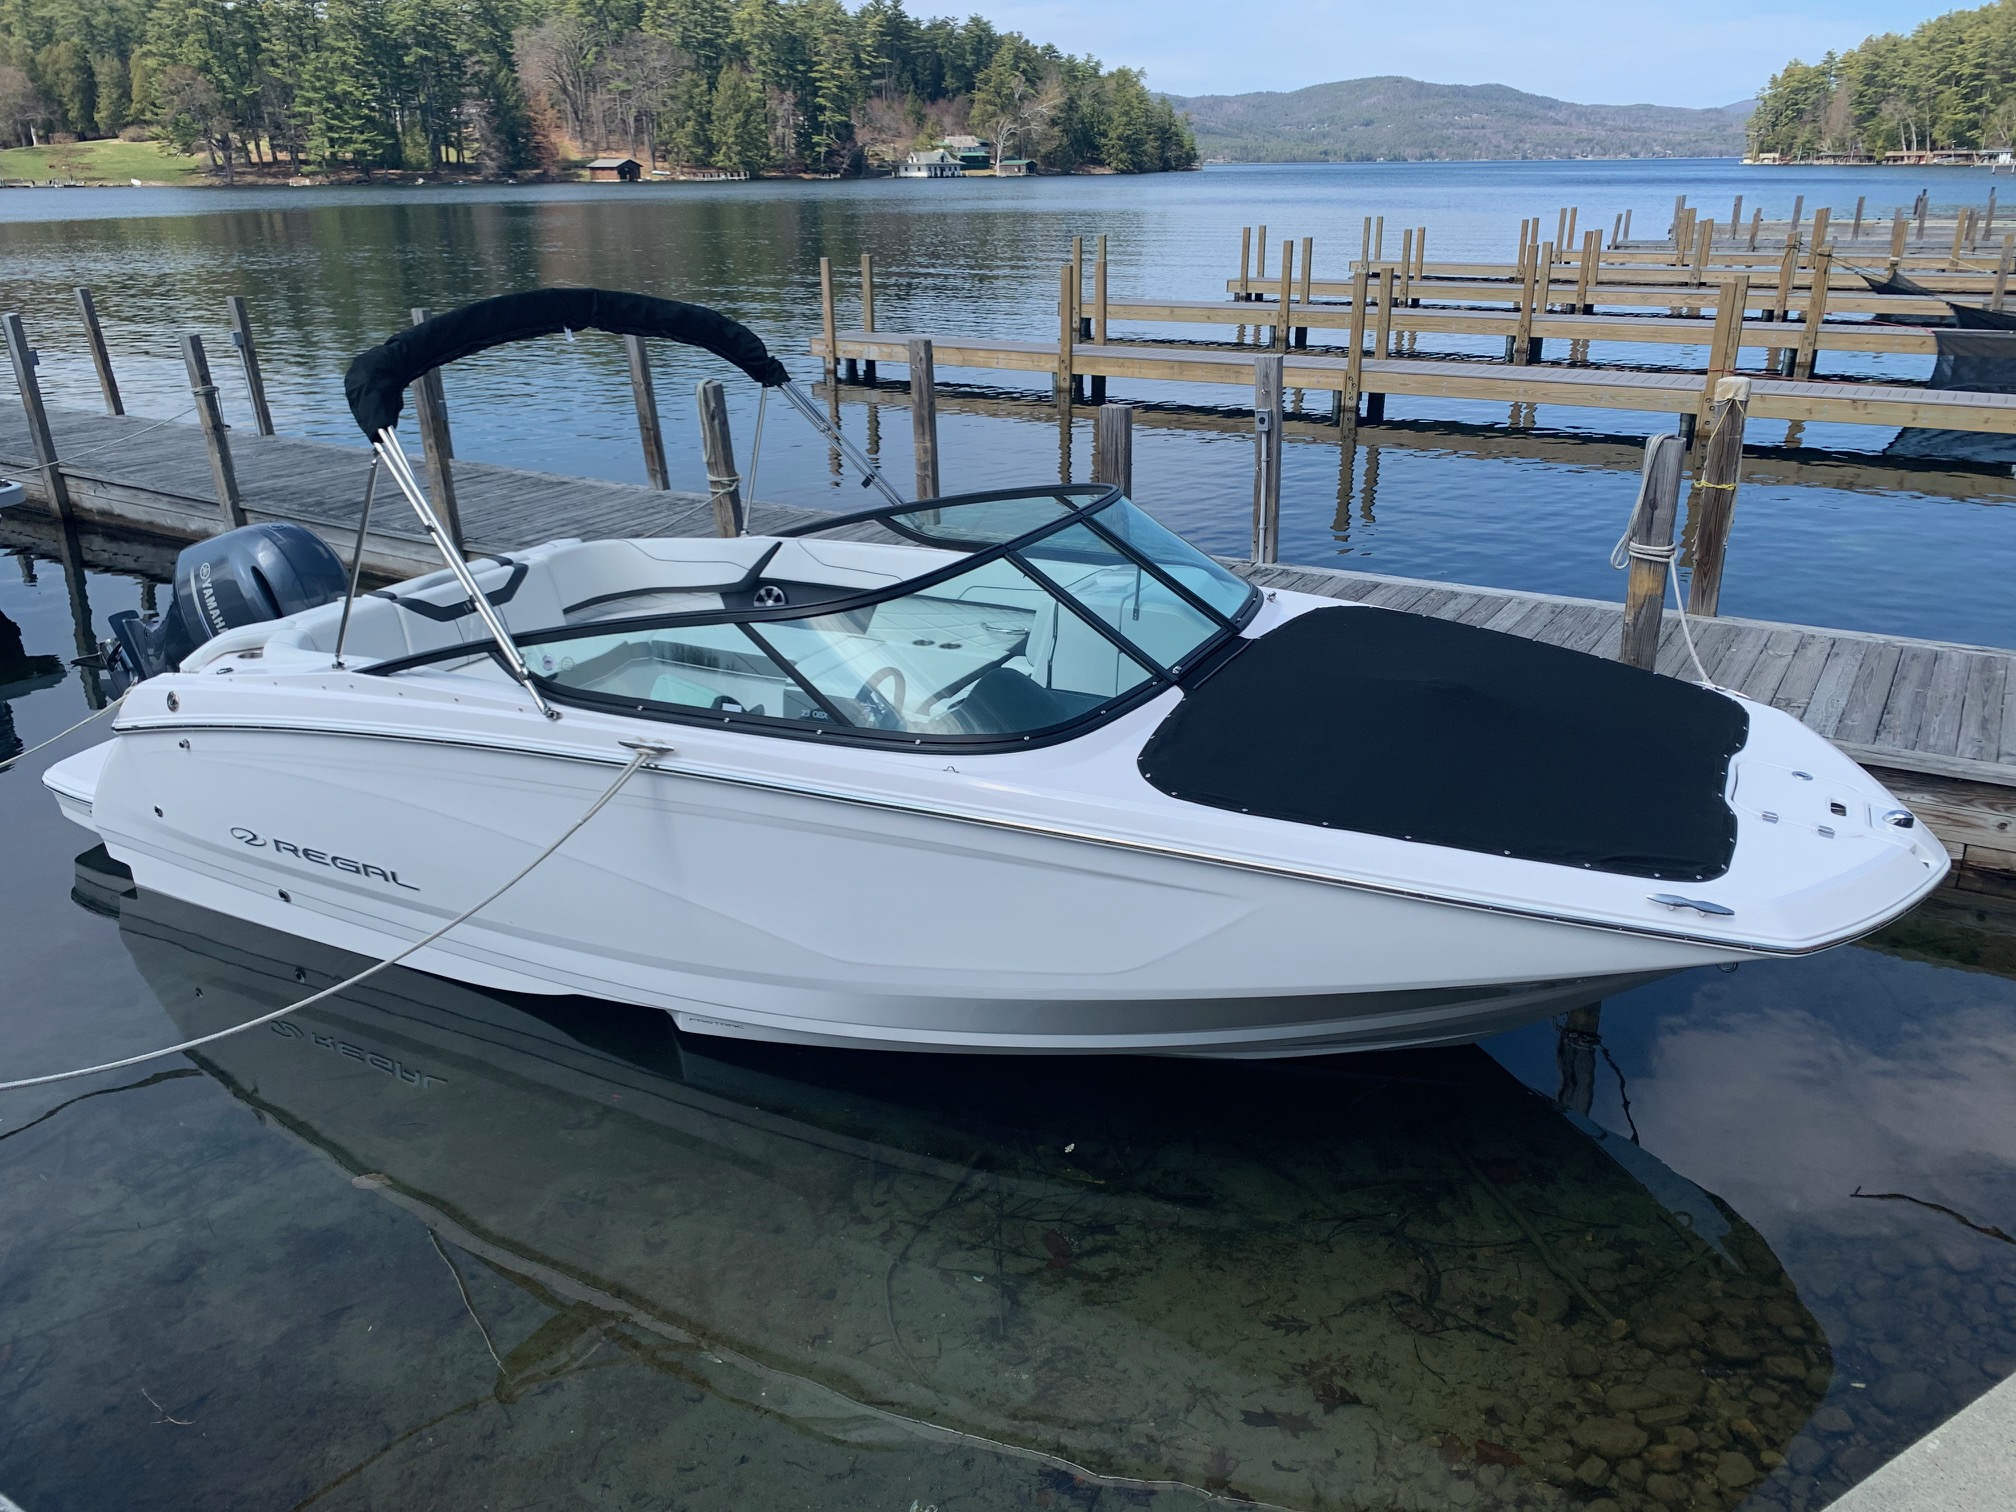 Lakin Care of Business - 2021 Regal 23 OBX